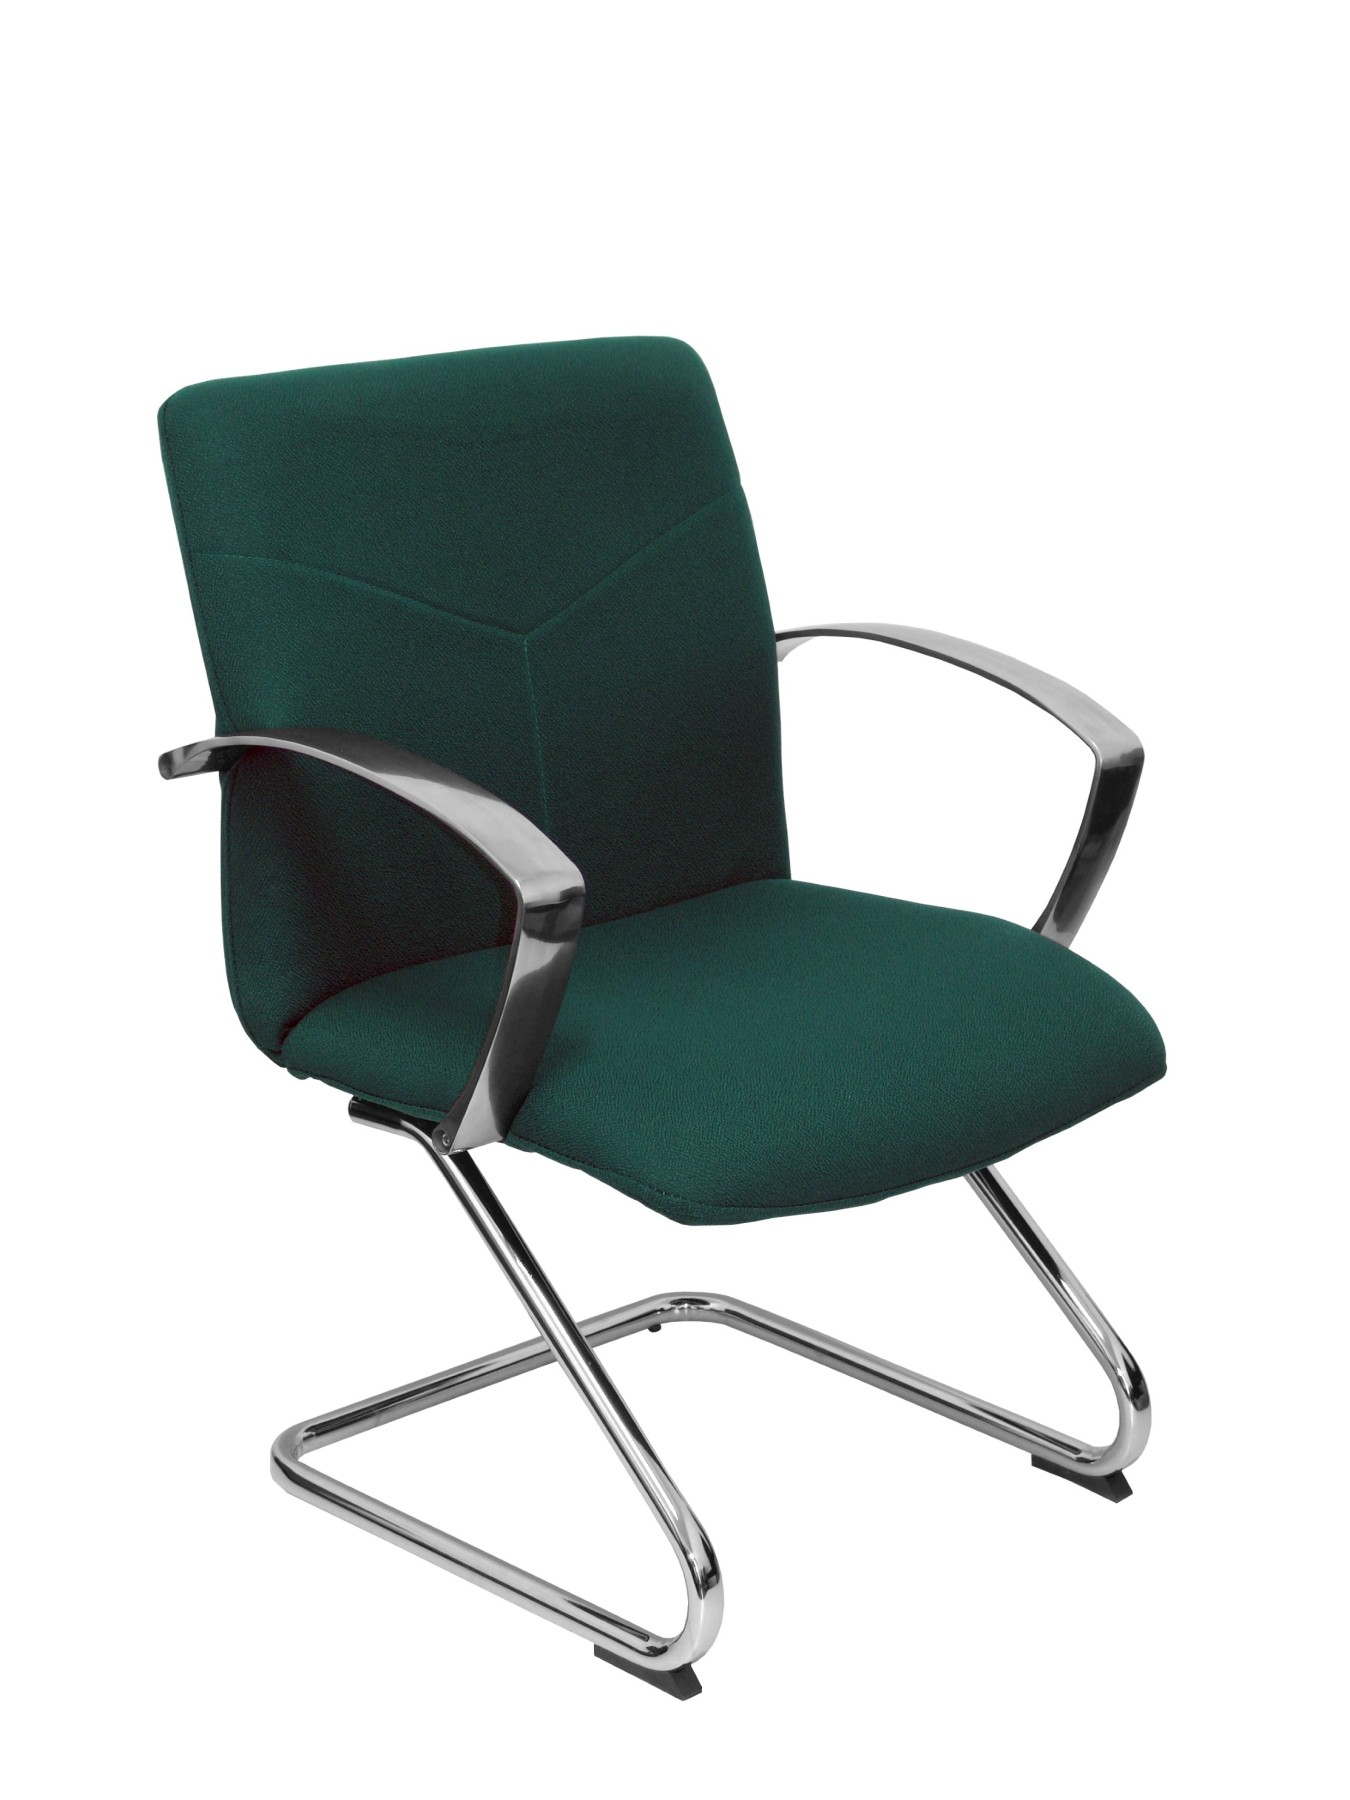 Armchair's Reception Ergonomic With Arms Fixed And Skate Chrome Up Seat And Backstop Upholstered In BALI Tissue Color